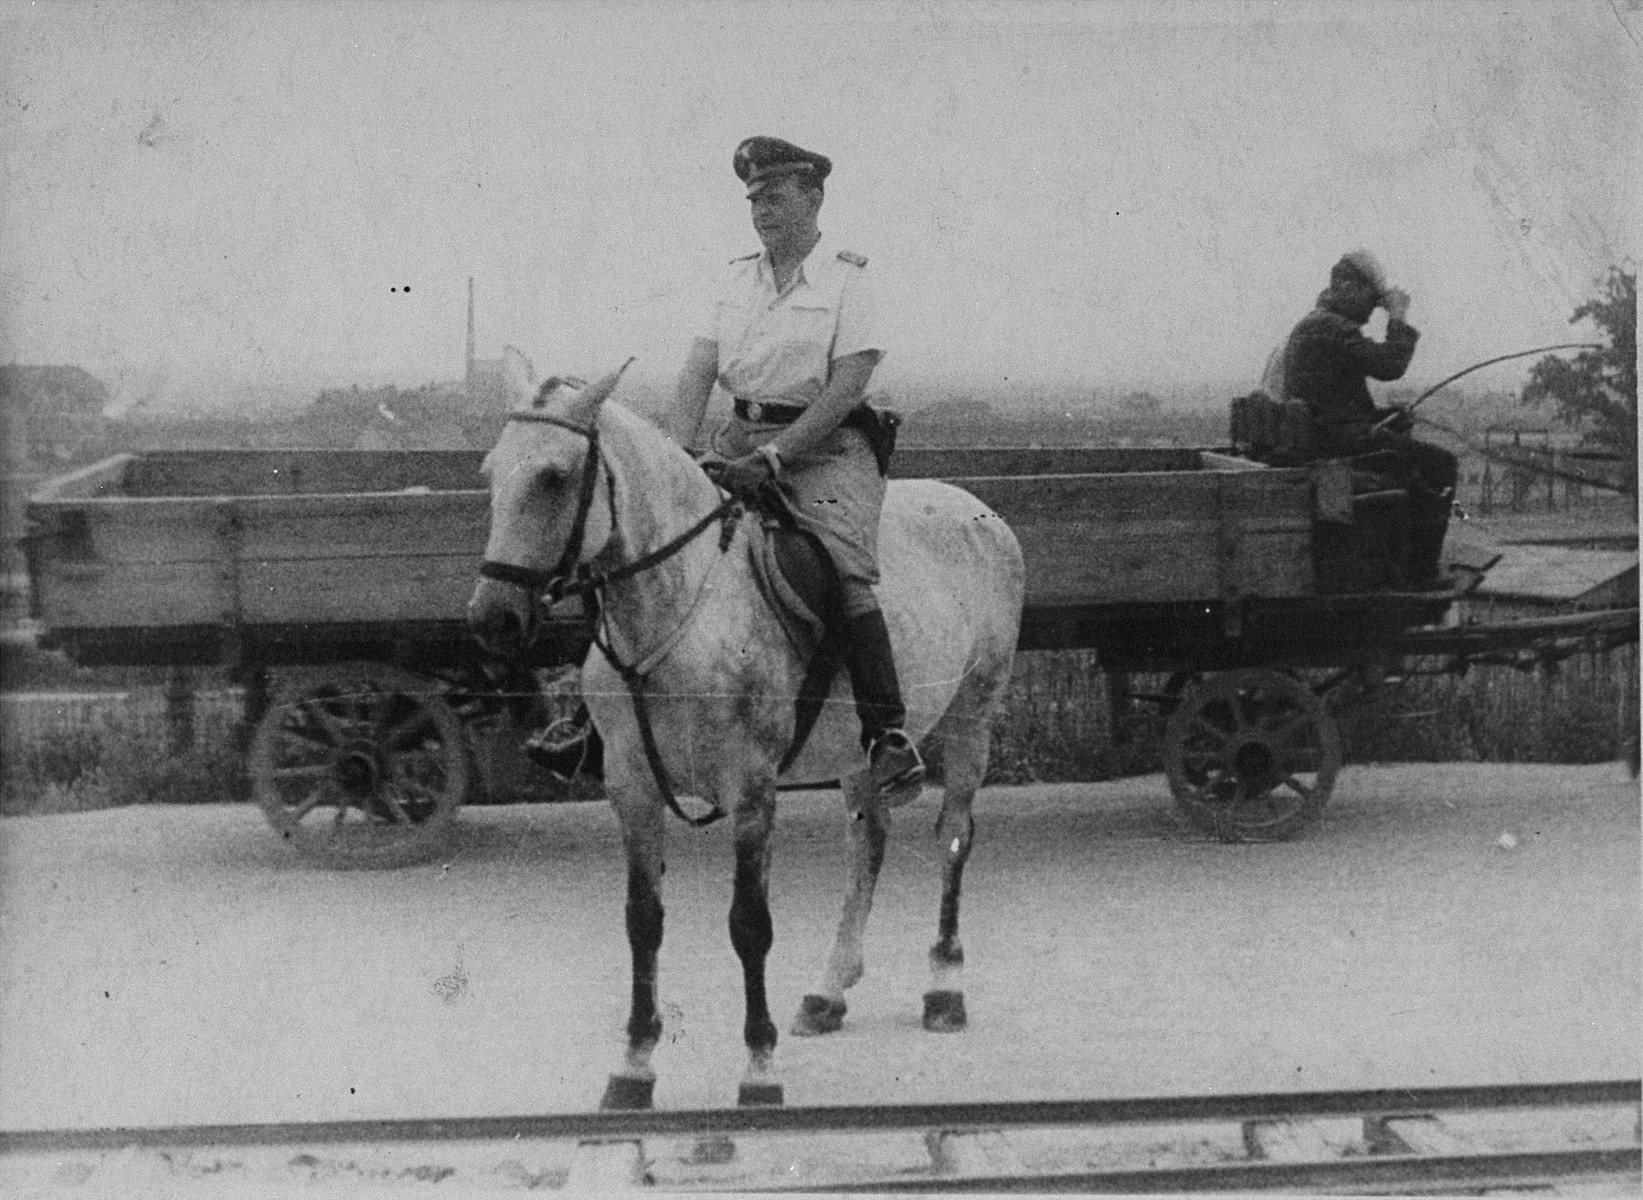 Commandant Amon Goeth rides his horse in the Plaszow concentration camp.